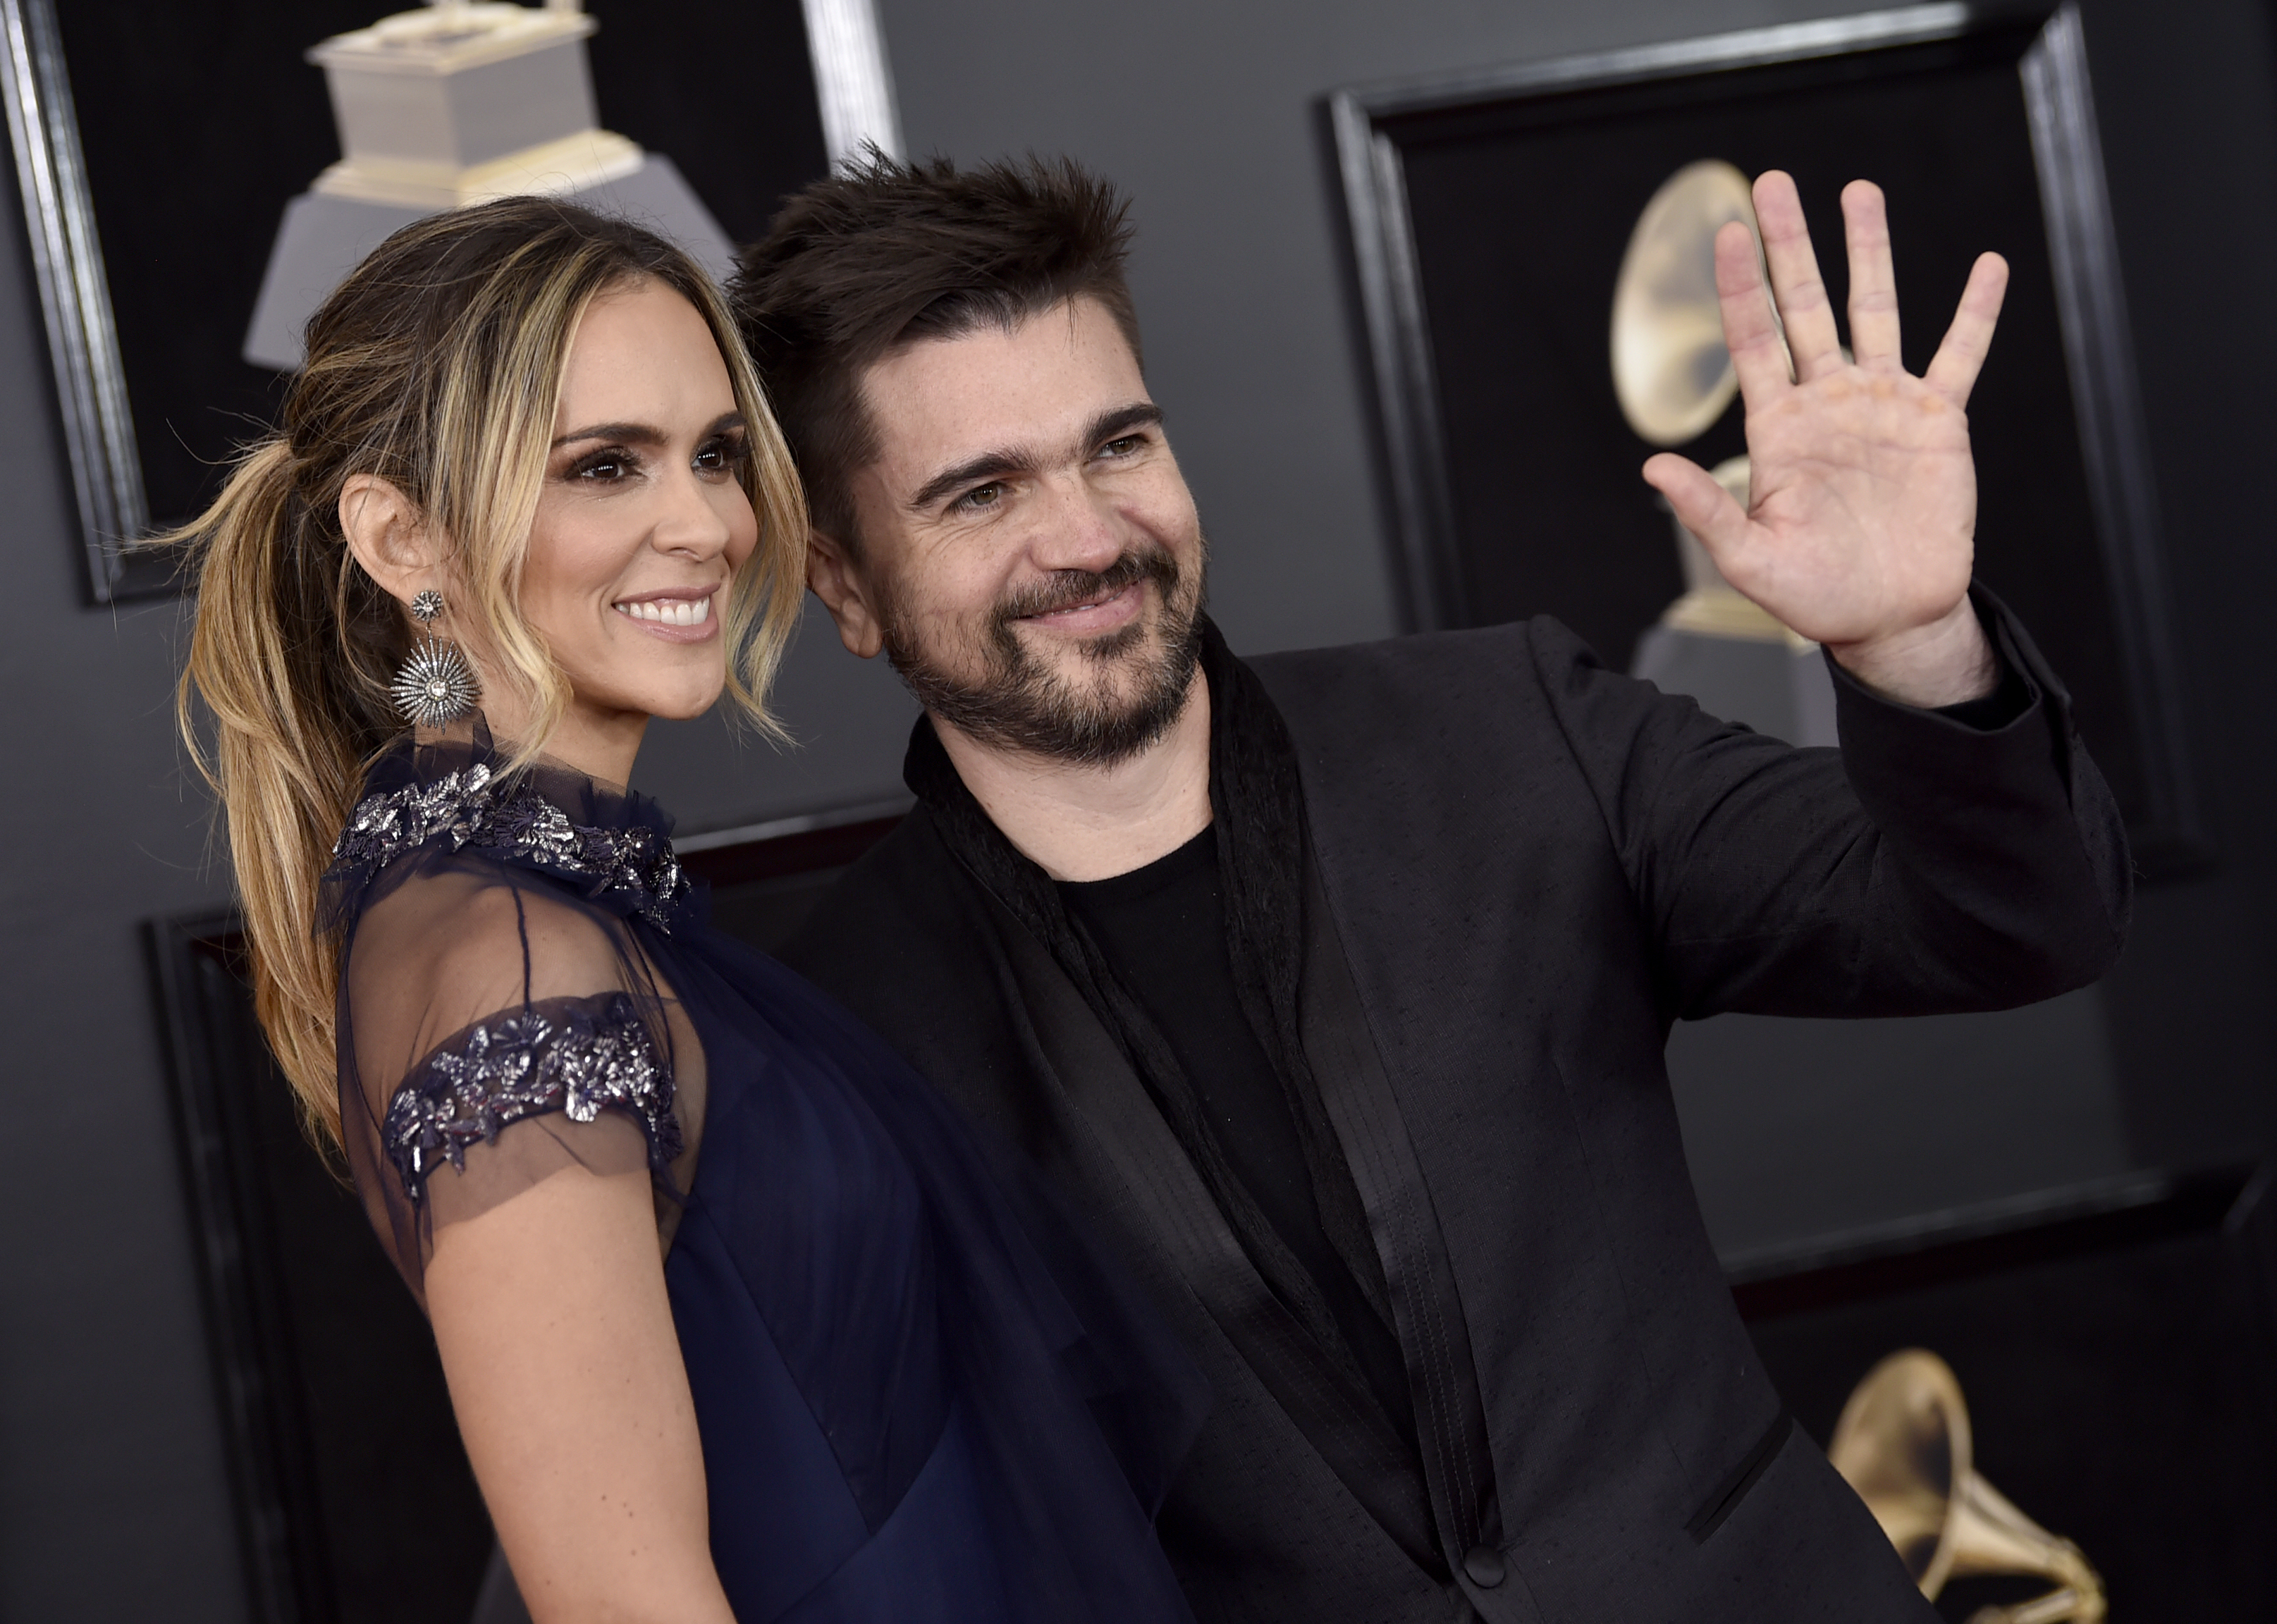 <div class='meta'><div class='origin-logo' data-origin='AP'></div><span class='caption-text' data-credit='Evan Agostini/Invision/AP'>Juanes, right, and Karen Martinez arrive at the 60th annual Grammy Awards at Madison Square Garden on Sunday, Jan. 28, 2018, in New York.</span></div>